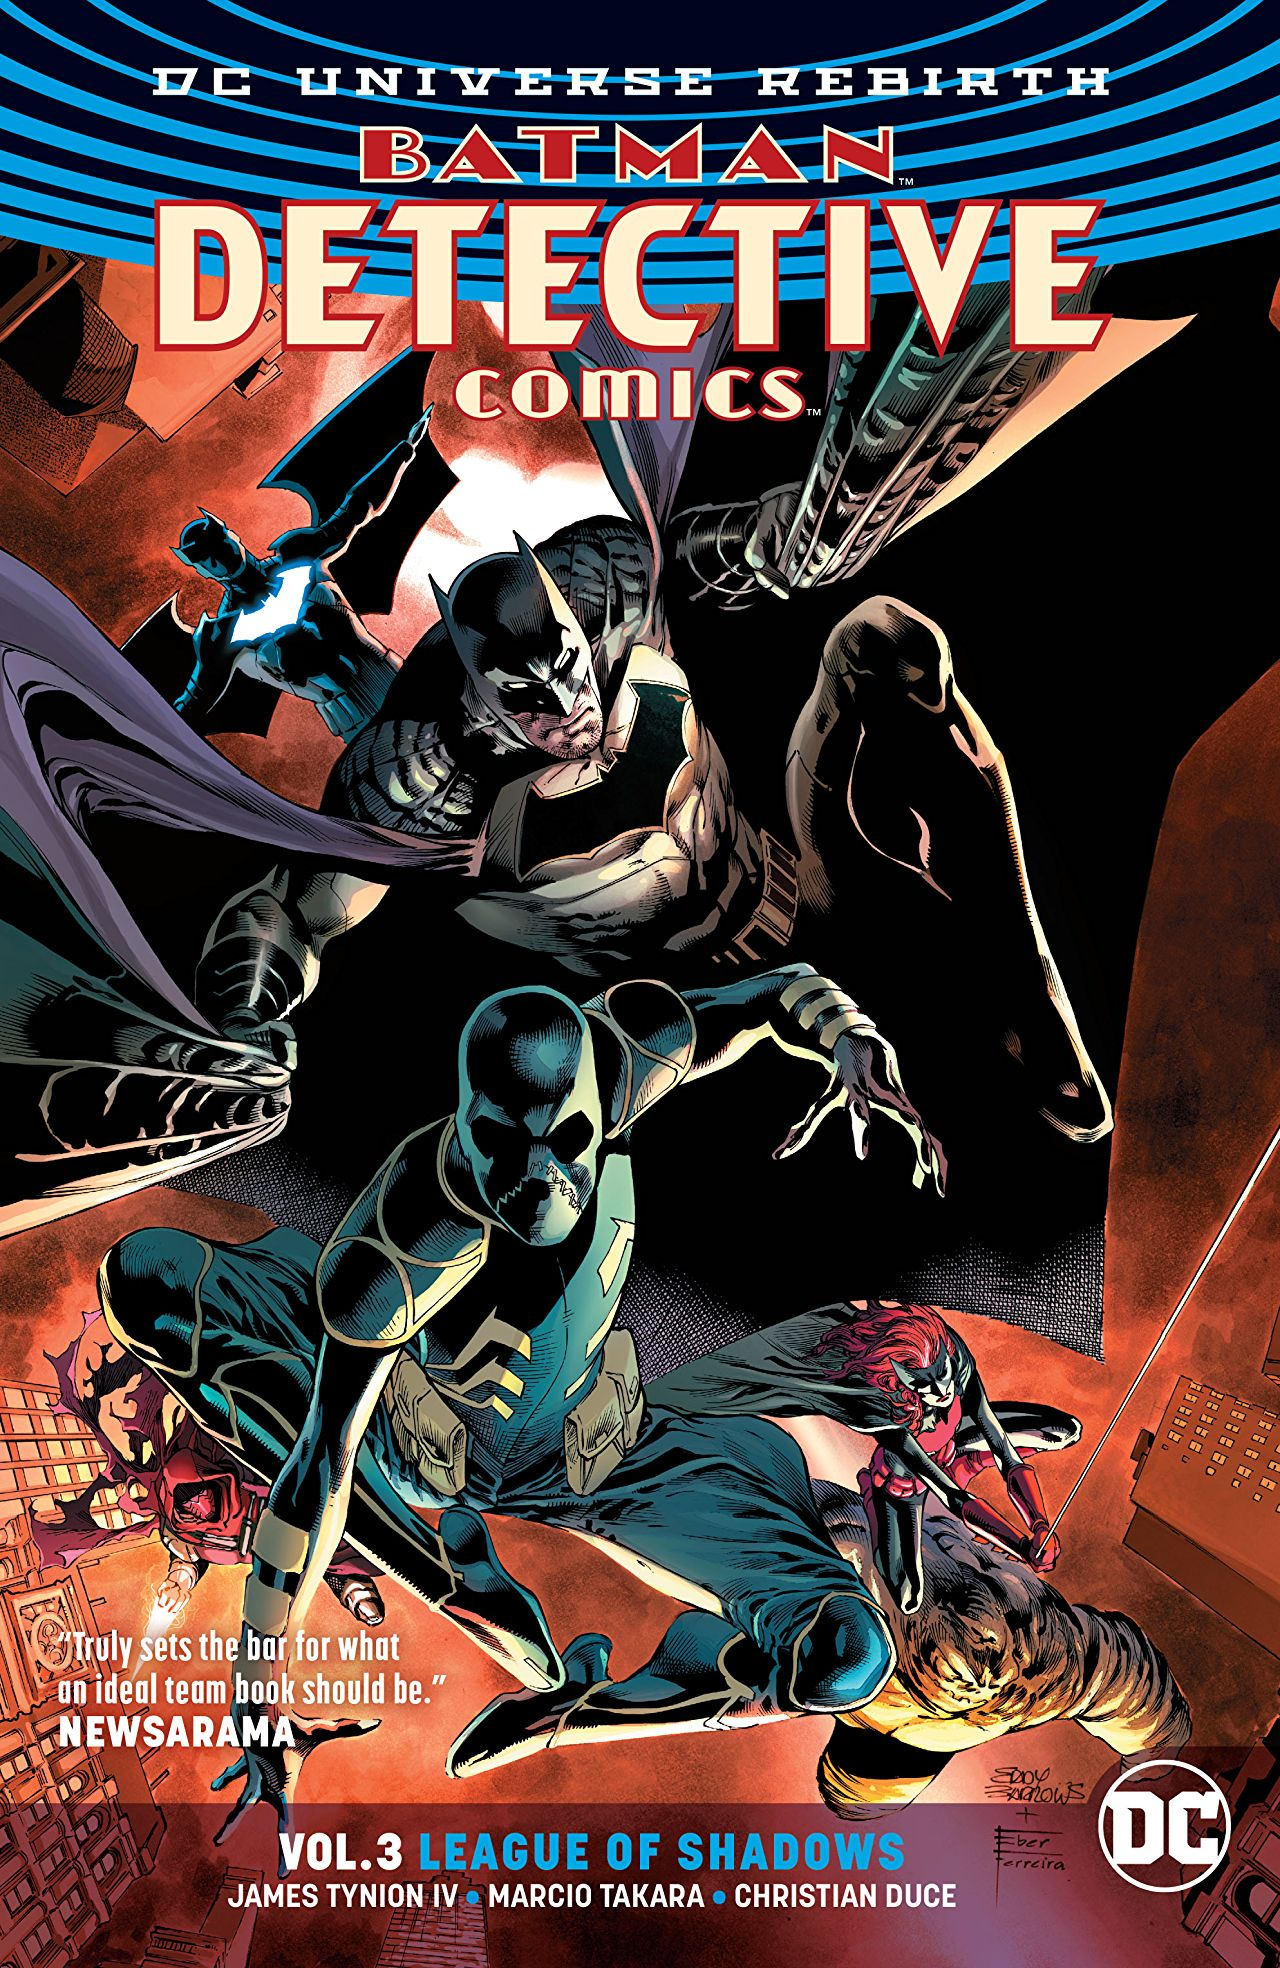 'Detective Comics Vol. 3: League of Shadows' review: A story with potential overshadowed by a grander story on the horizon